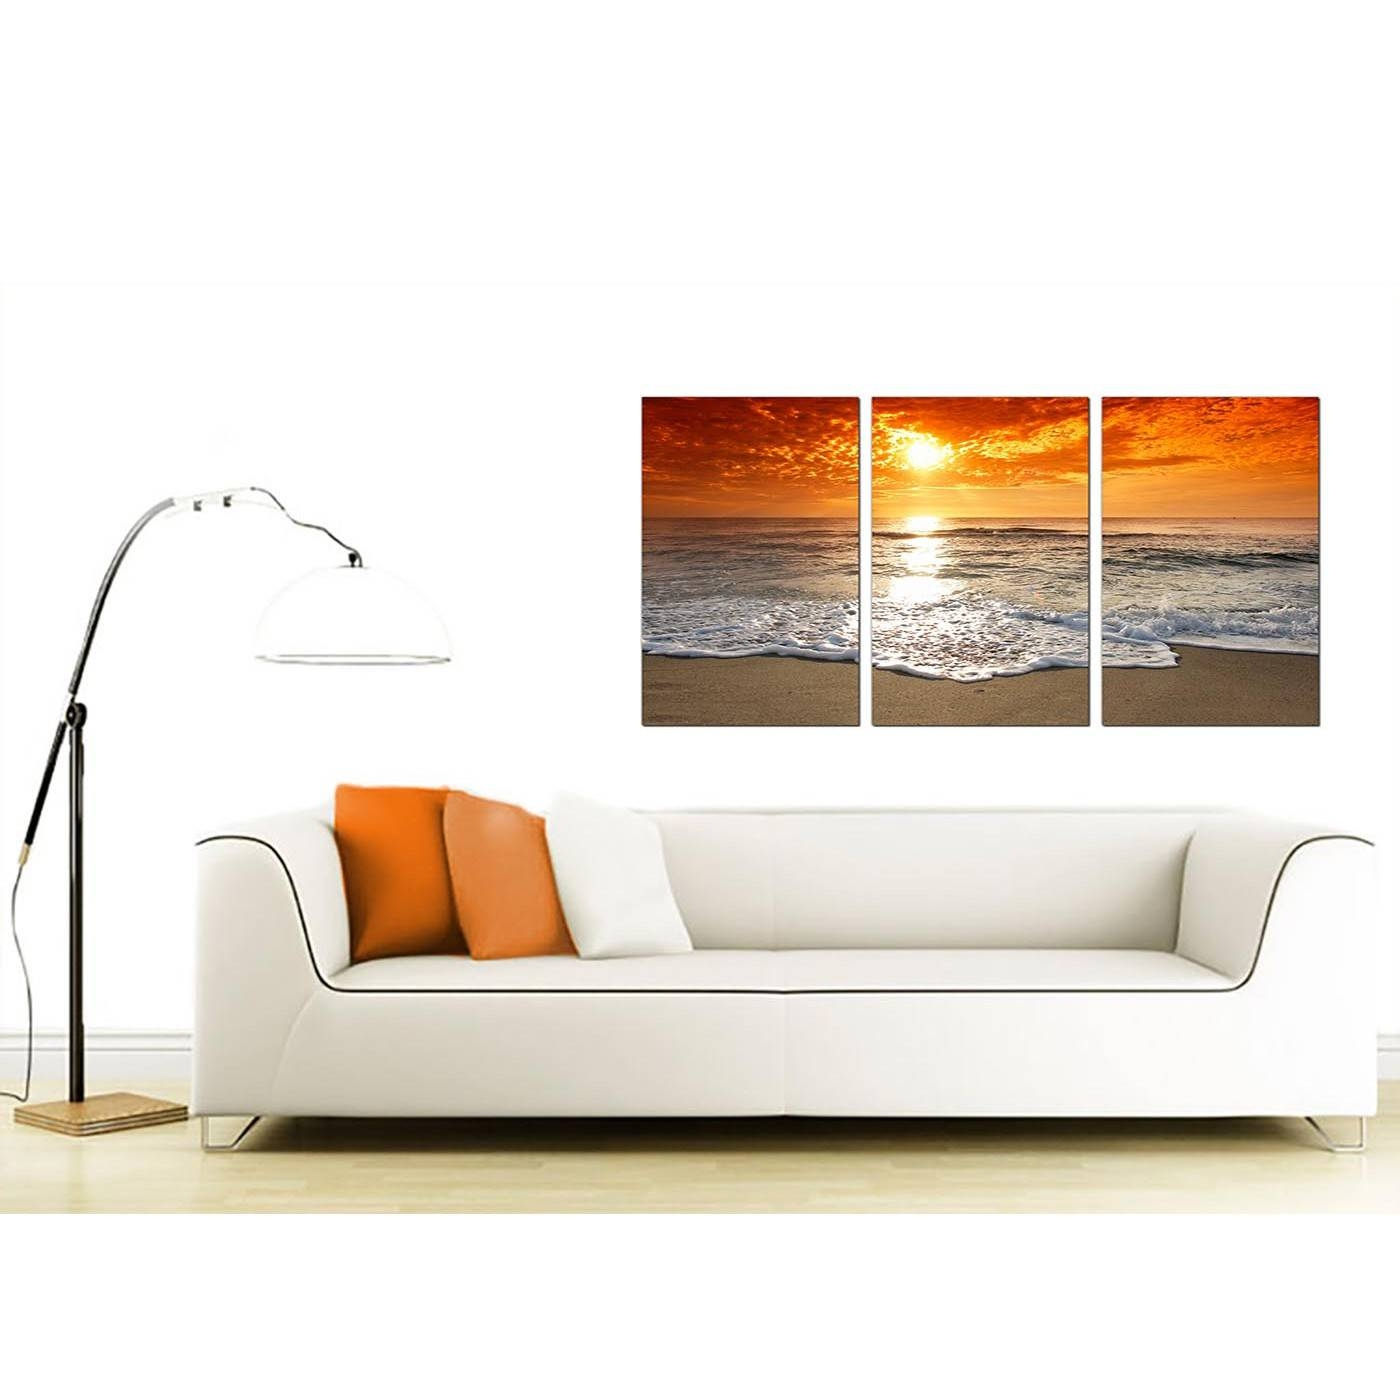 Cheap Beach Sunset Canvas Prints Uk Set Of 3 For Your Living Room With Regard To Recent Canvas Wall Art Sets Of  (View 9 of 25)